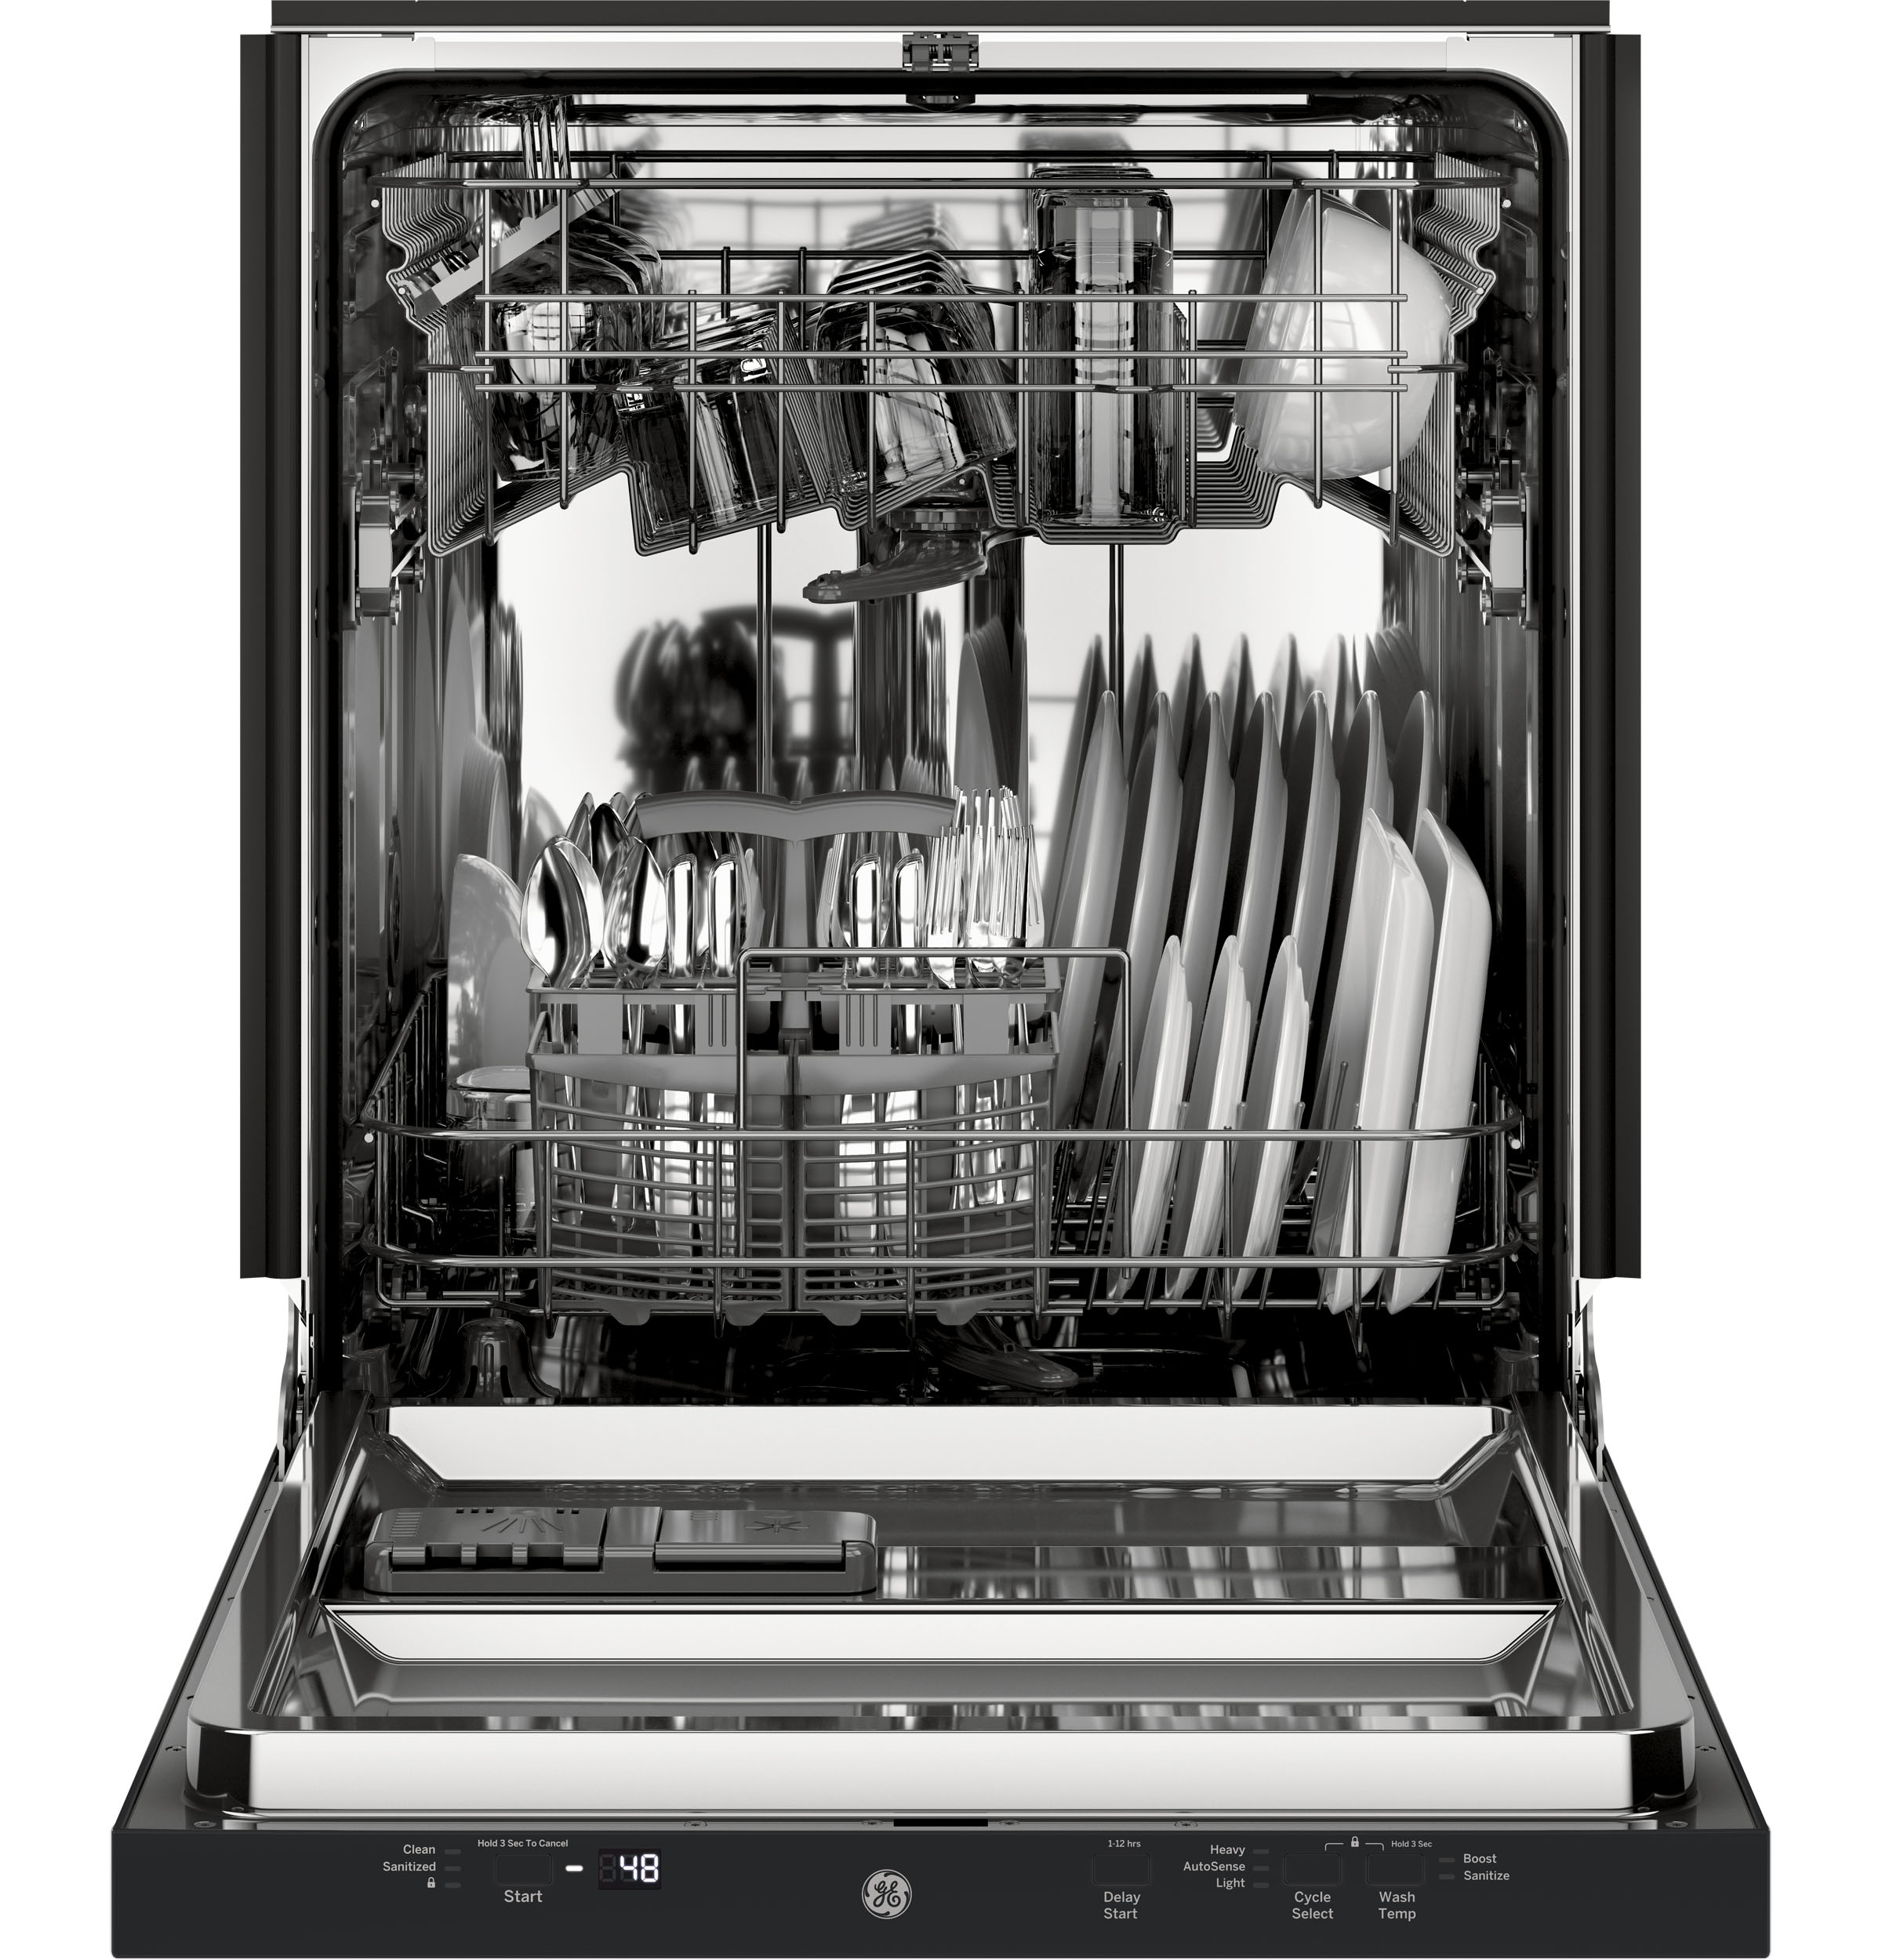 Model: GDT226SGLBB | GE GE® ADA Compliant Stainless Steel Interior Dishwasher with Sanitize Cycle